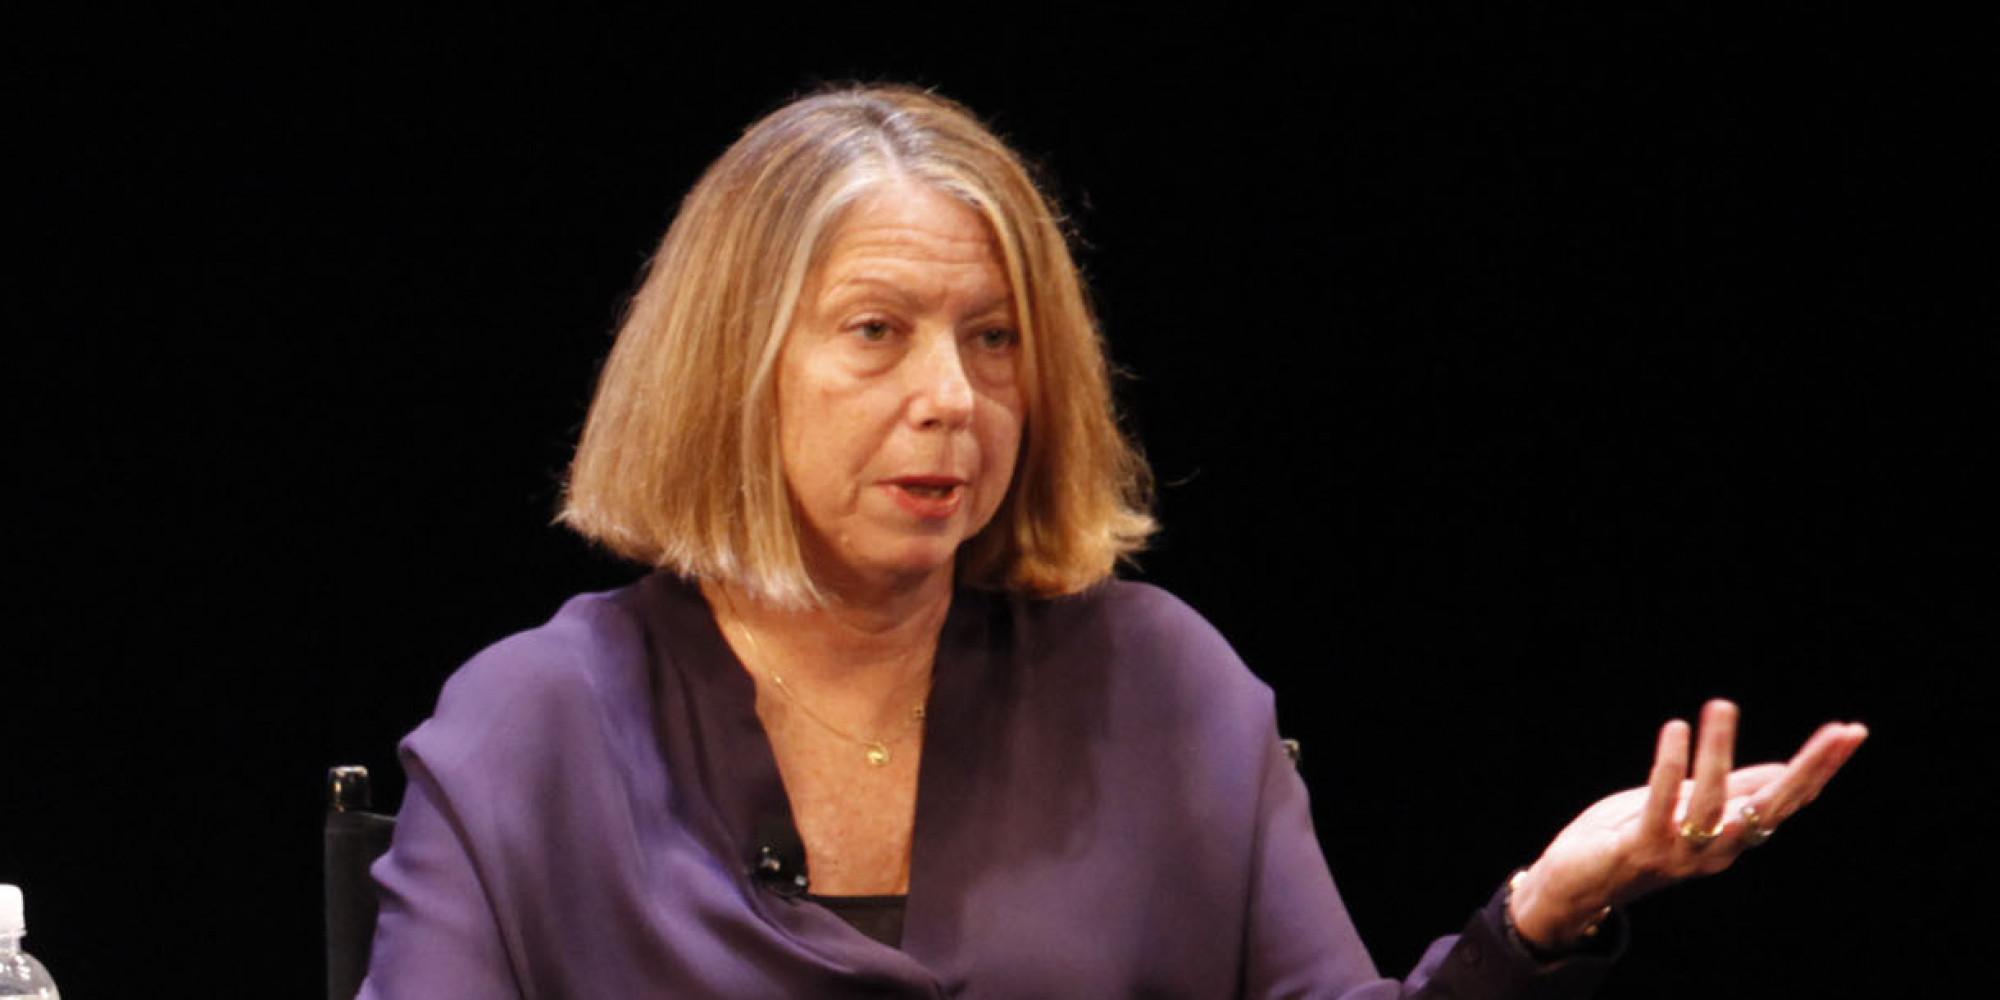 NY Times' Jill Abramson: 'This Is The Most Secretive White House...I Have Ever Dealt With'